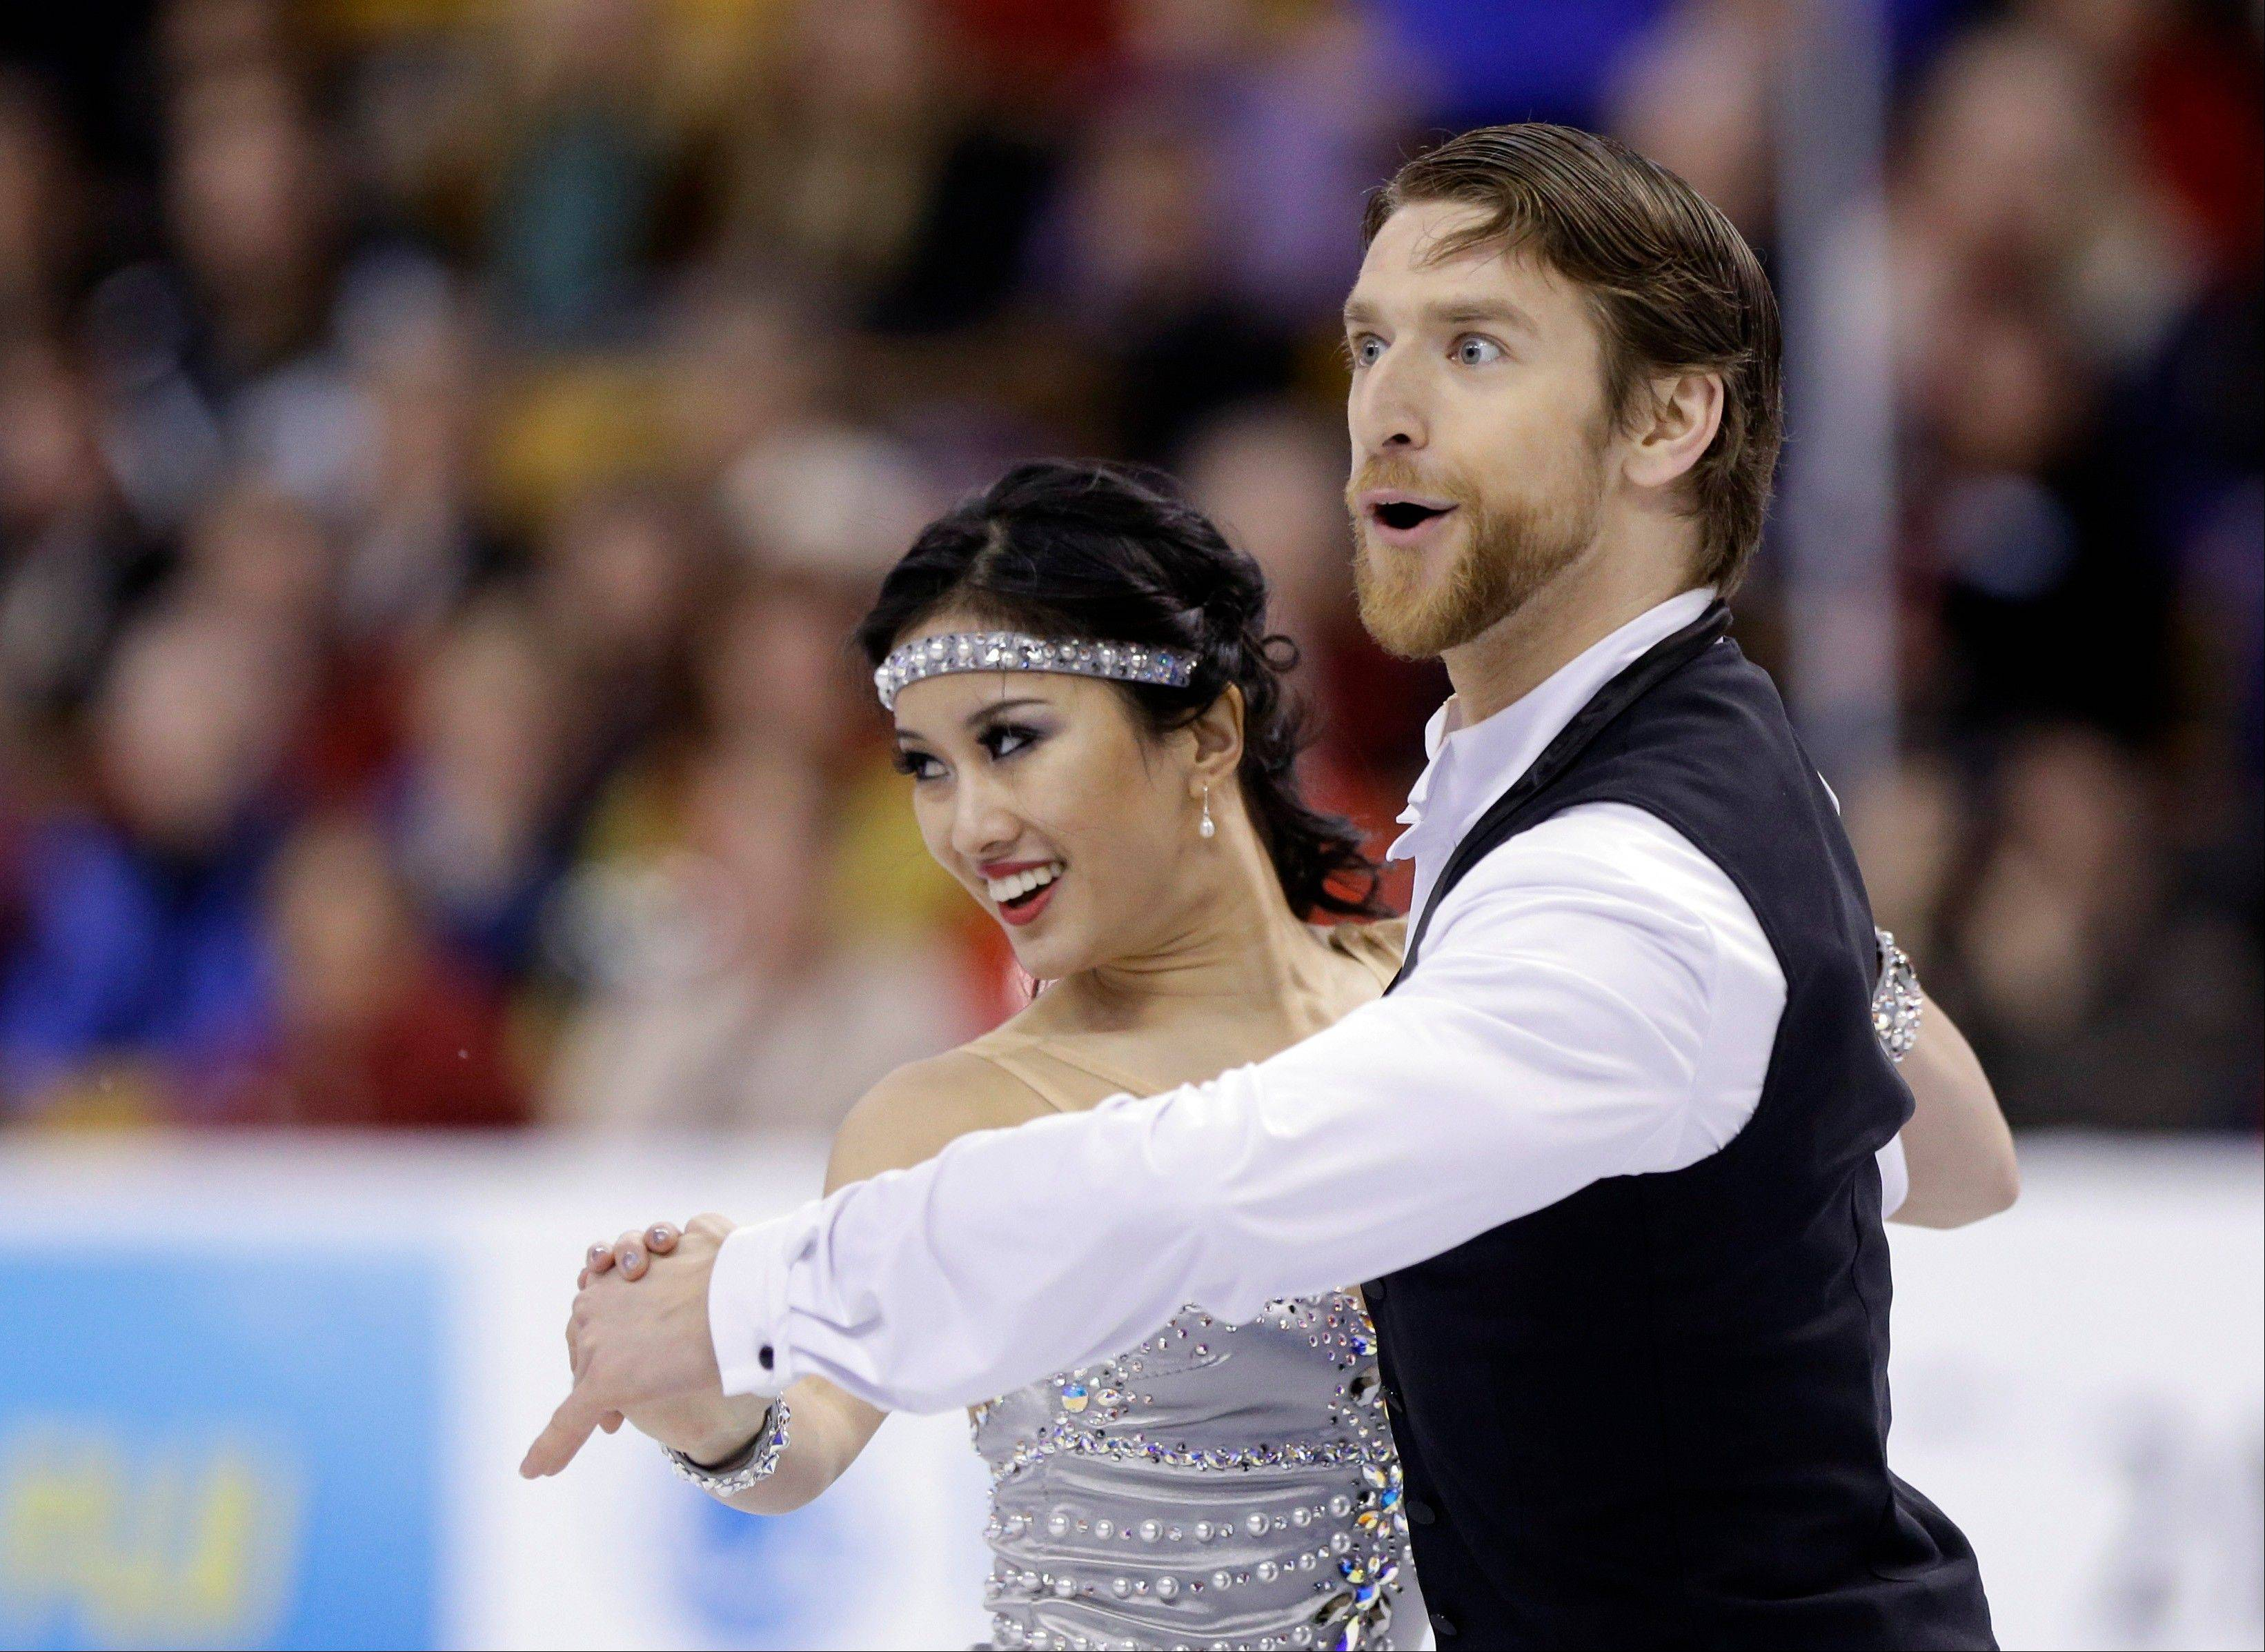 Lynn Kriengkrairut and Logan Giulietti-Schmitt skate during the ice dance short program at the U.S. Figure Skating Championships Friday, Jan. 10, 2014 in Boston. (AP Photo/Steven Senne)